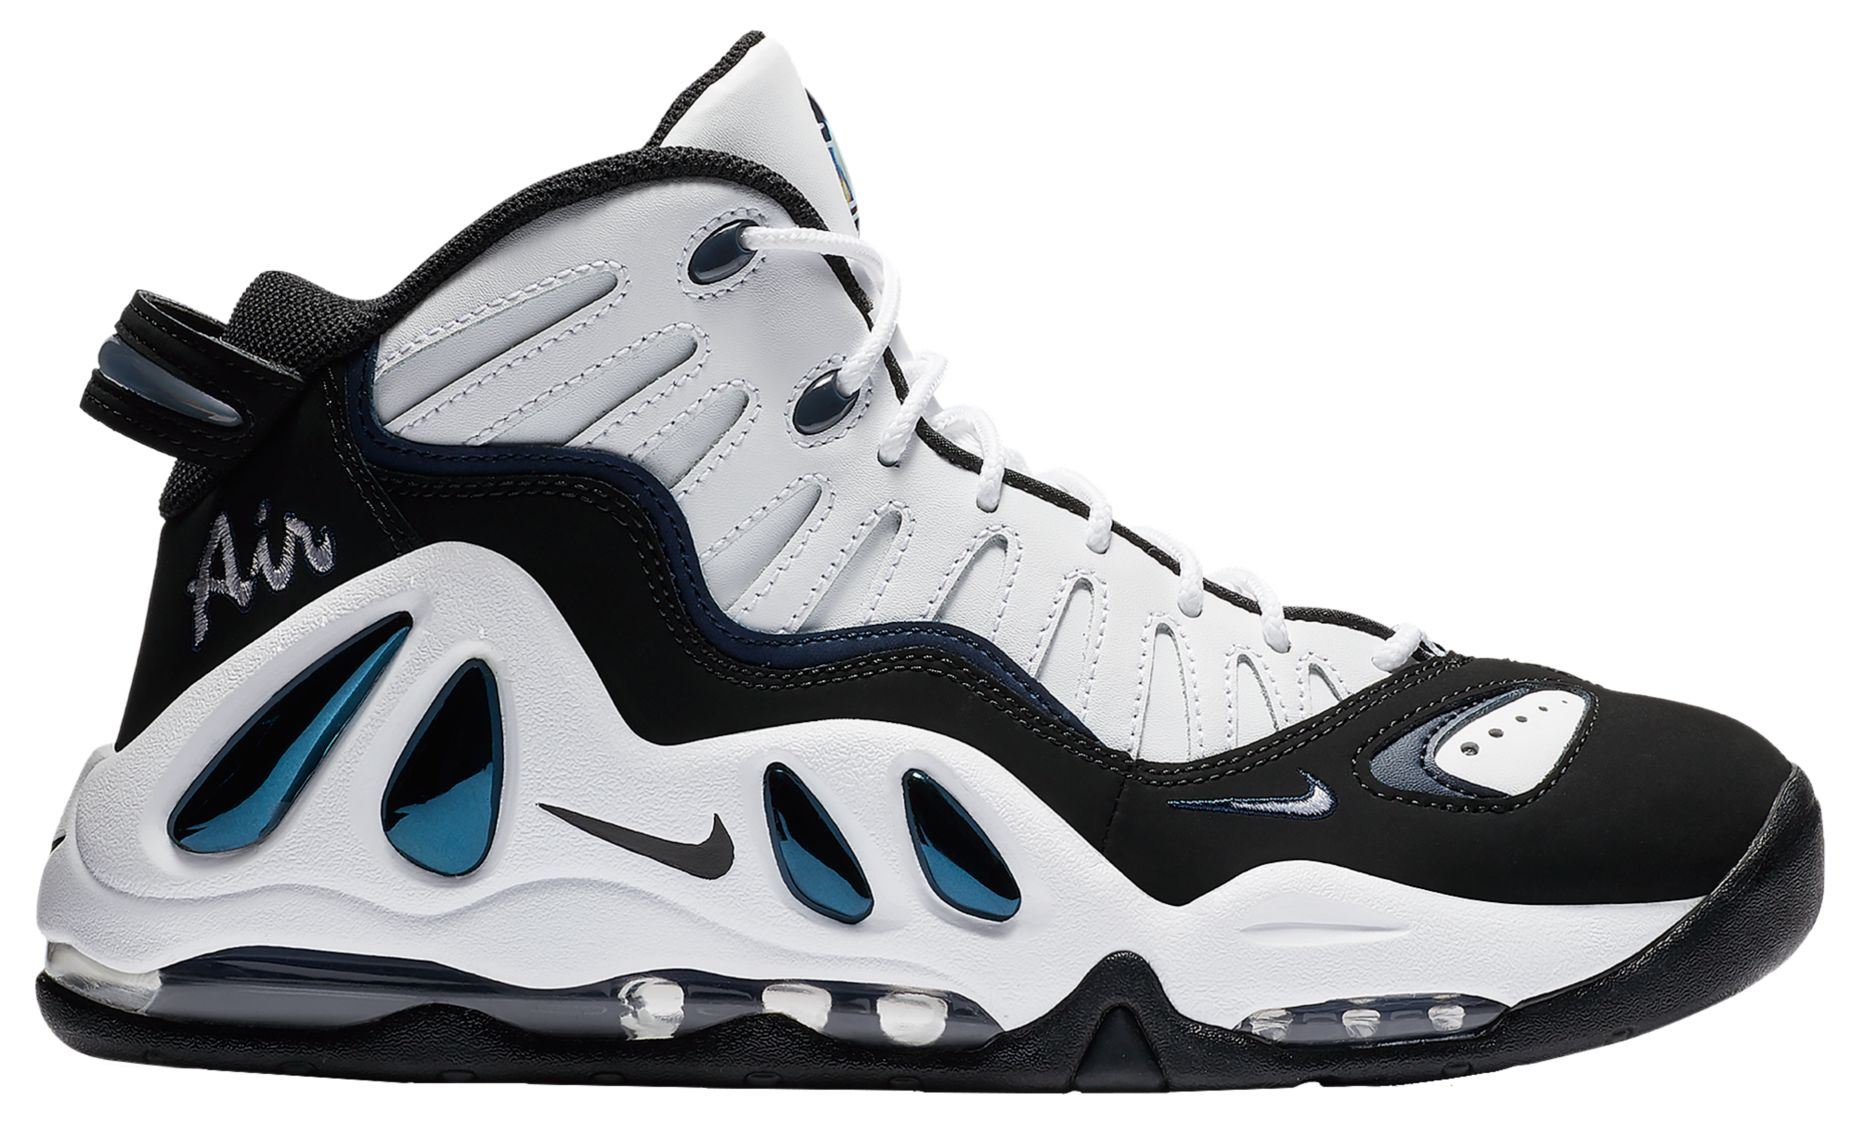 c40b8026ea The Nike Air Max Uptempo 97 Will Be Back Next Month - WearTesters